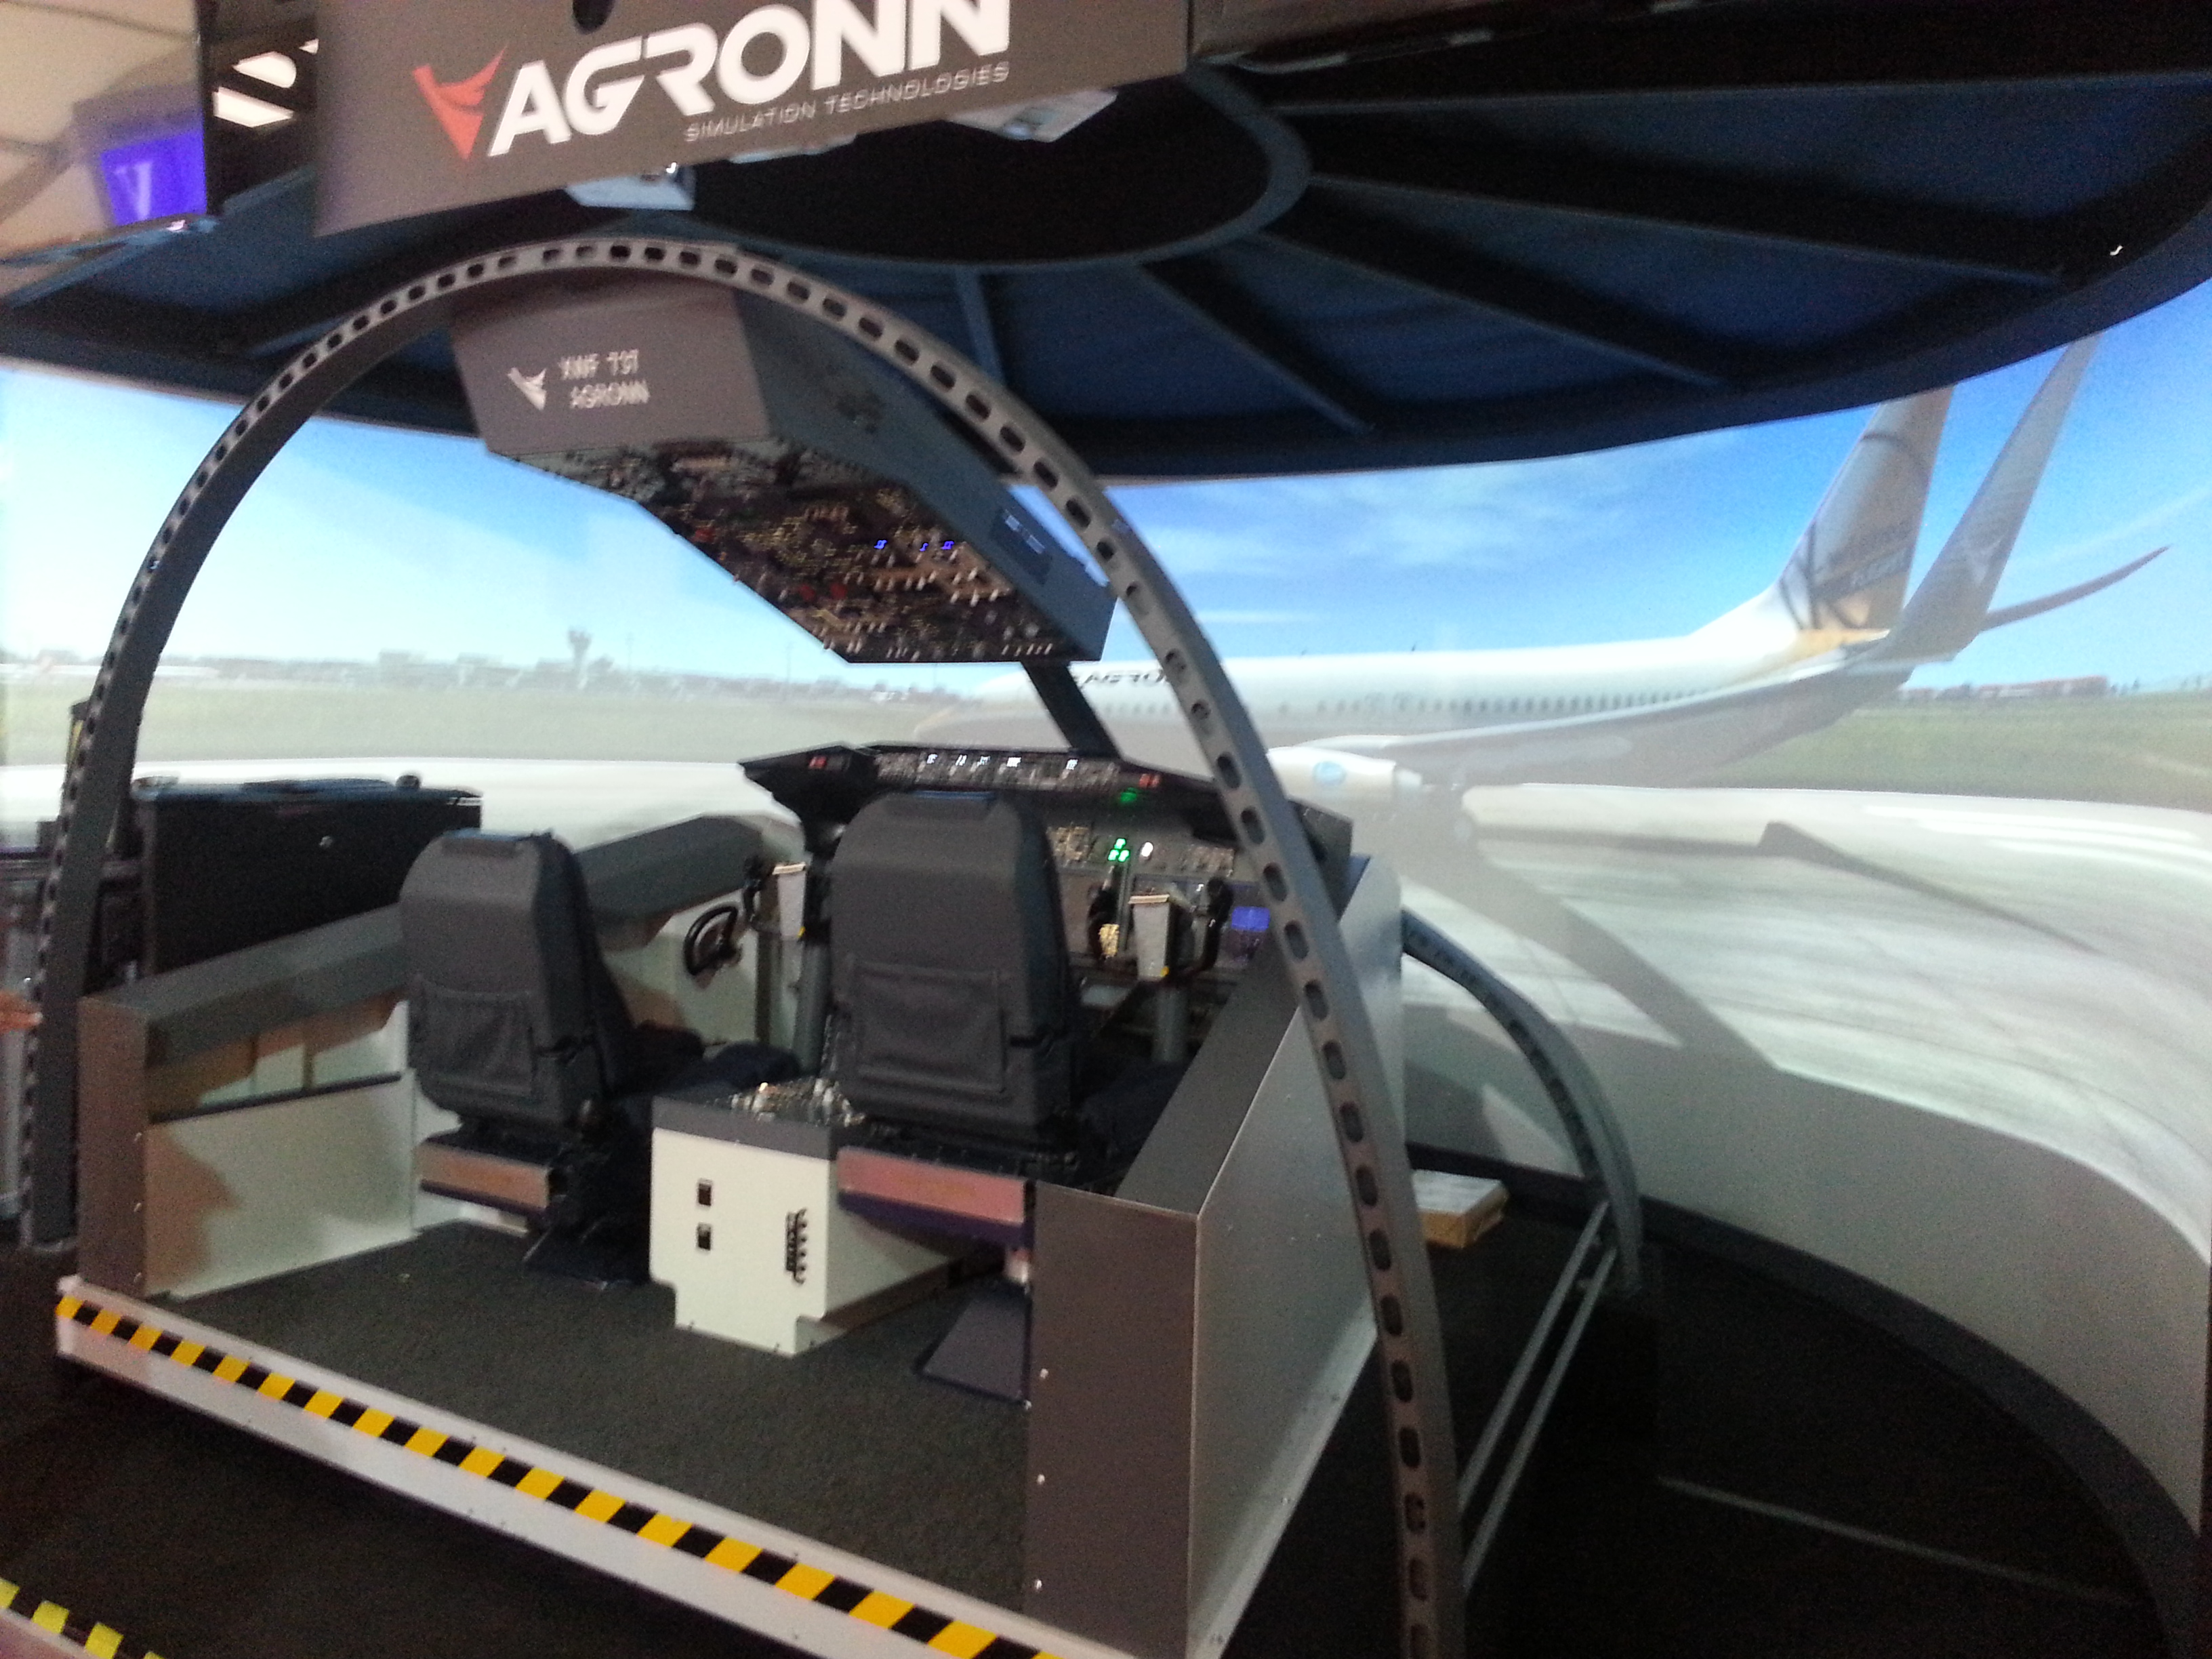 AGRONN fixed base B737NG simulator